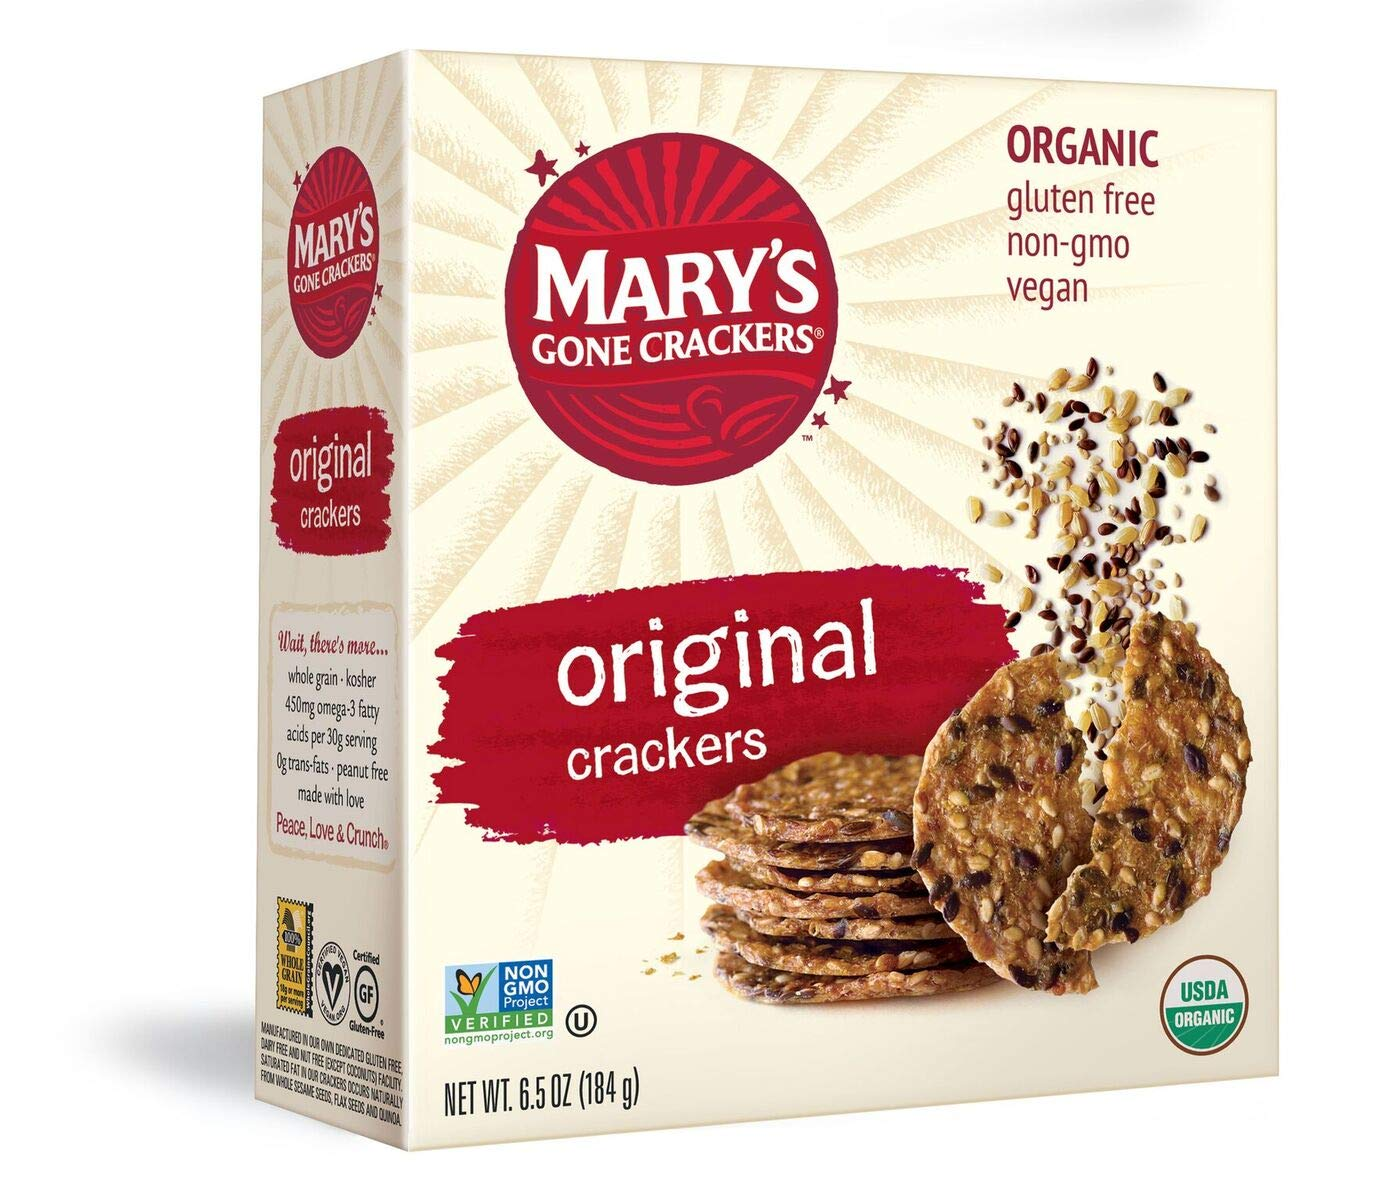 Mary's Gone Crackers Original Crackers, Organic Brown Rice, Flax & Sesame Seeds, Gluten Free, 6.5 Ounce (Pack of 6) by Mary's Gone Crackers